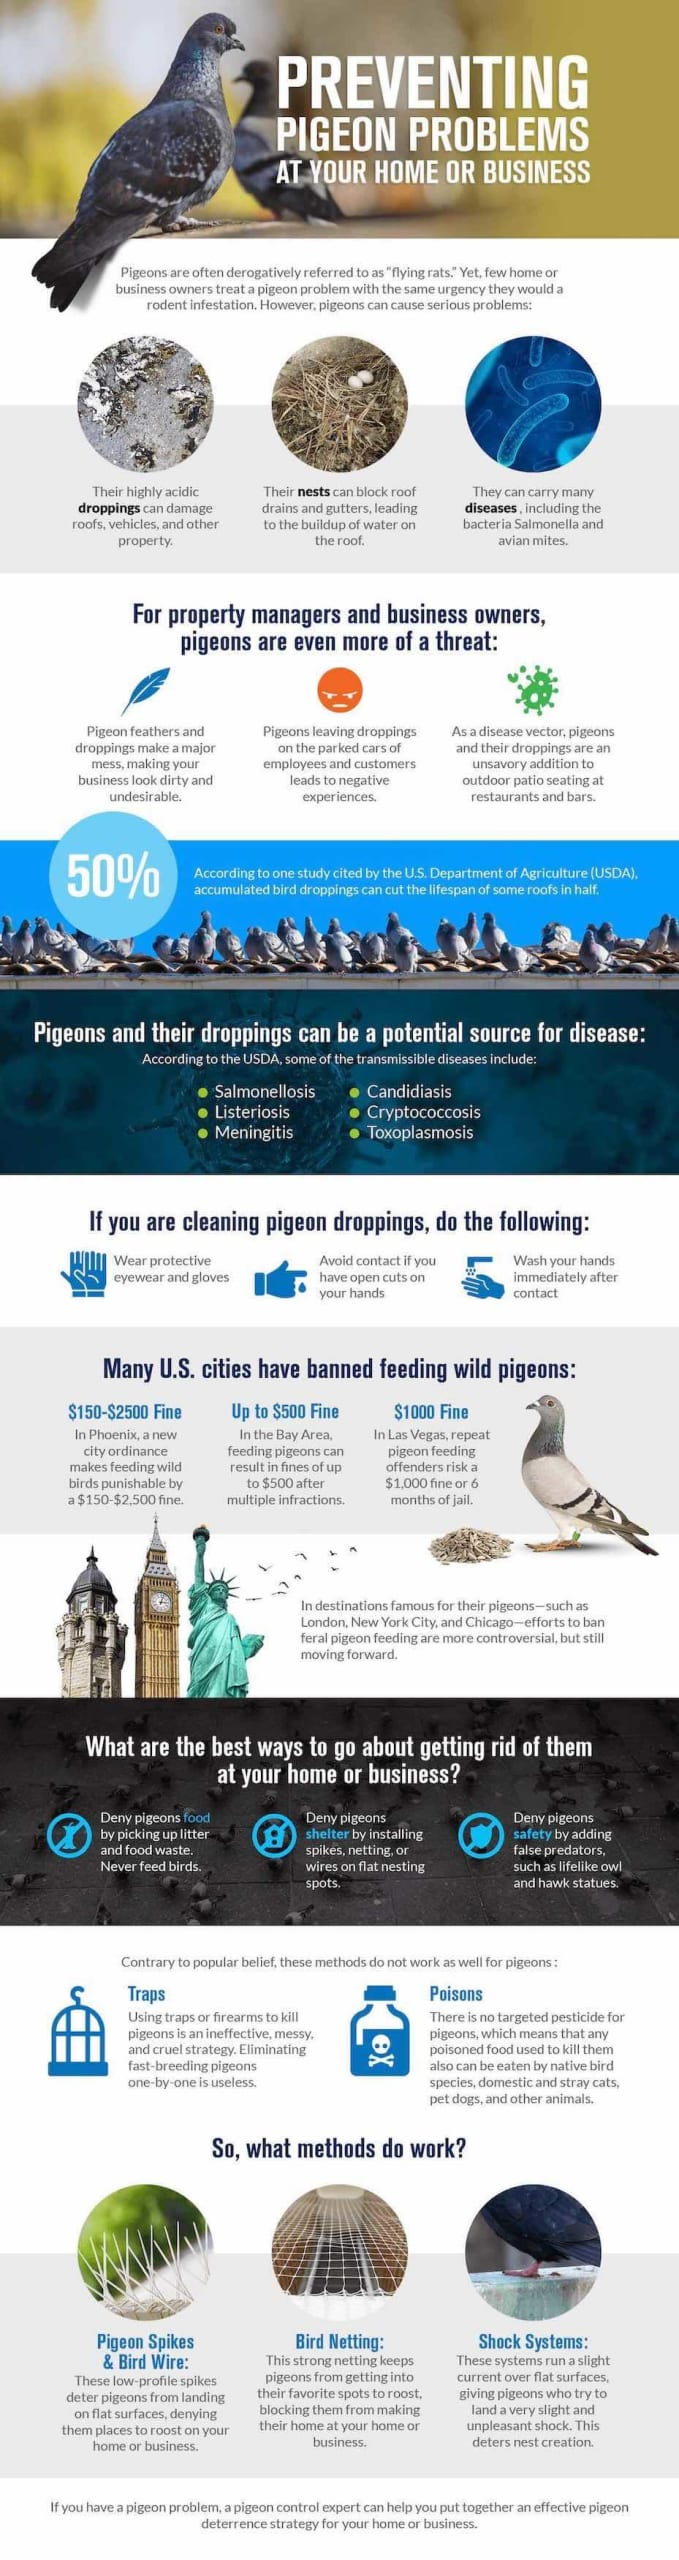 This infographic outlines several ways that homeowners and businesses can humanely get rid of their pigeon infestations.